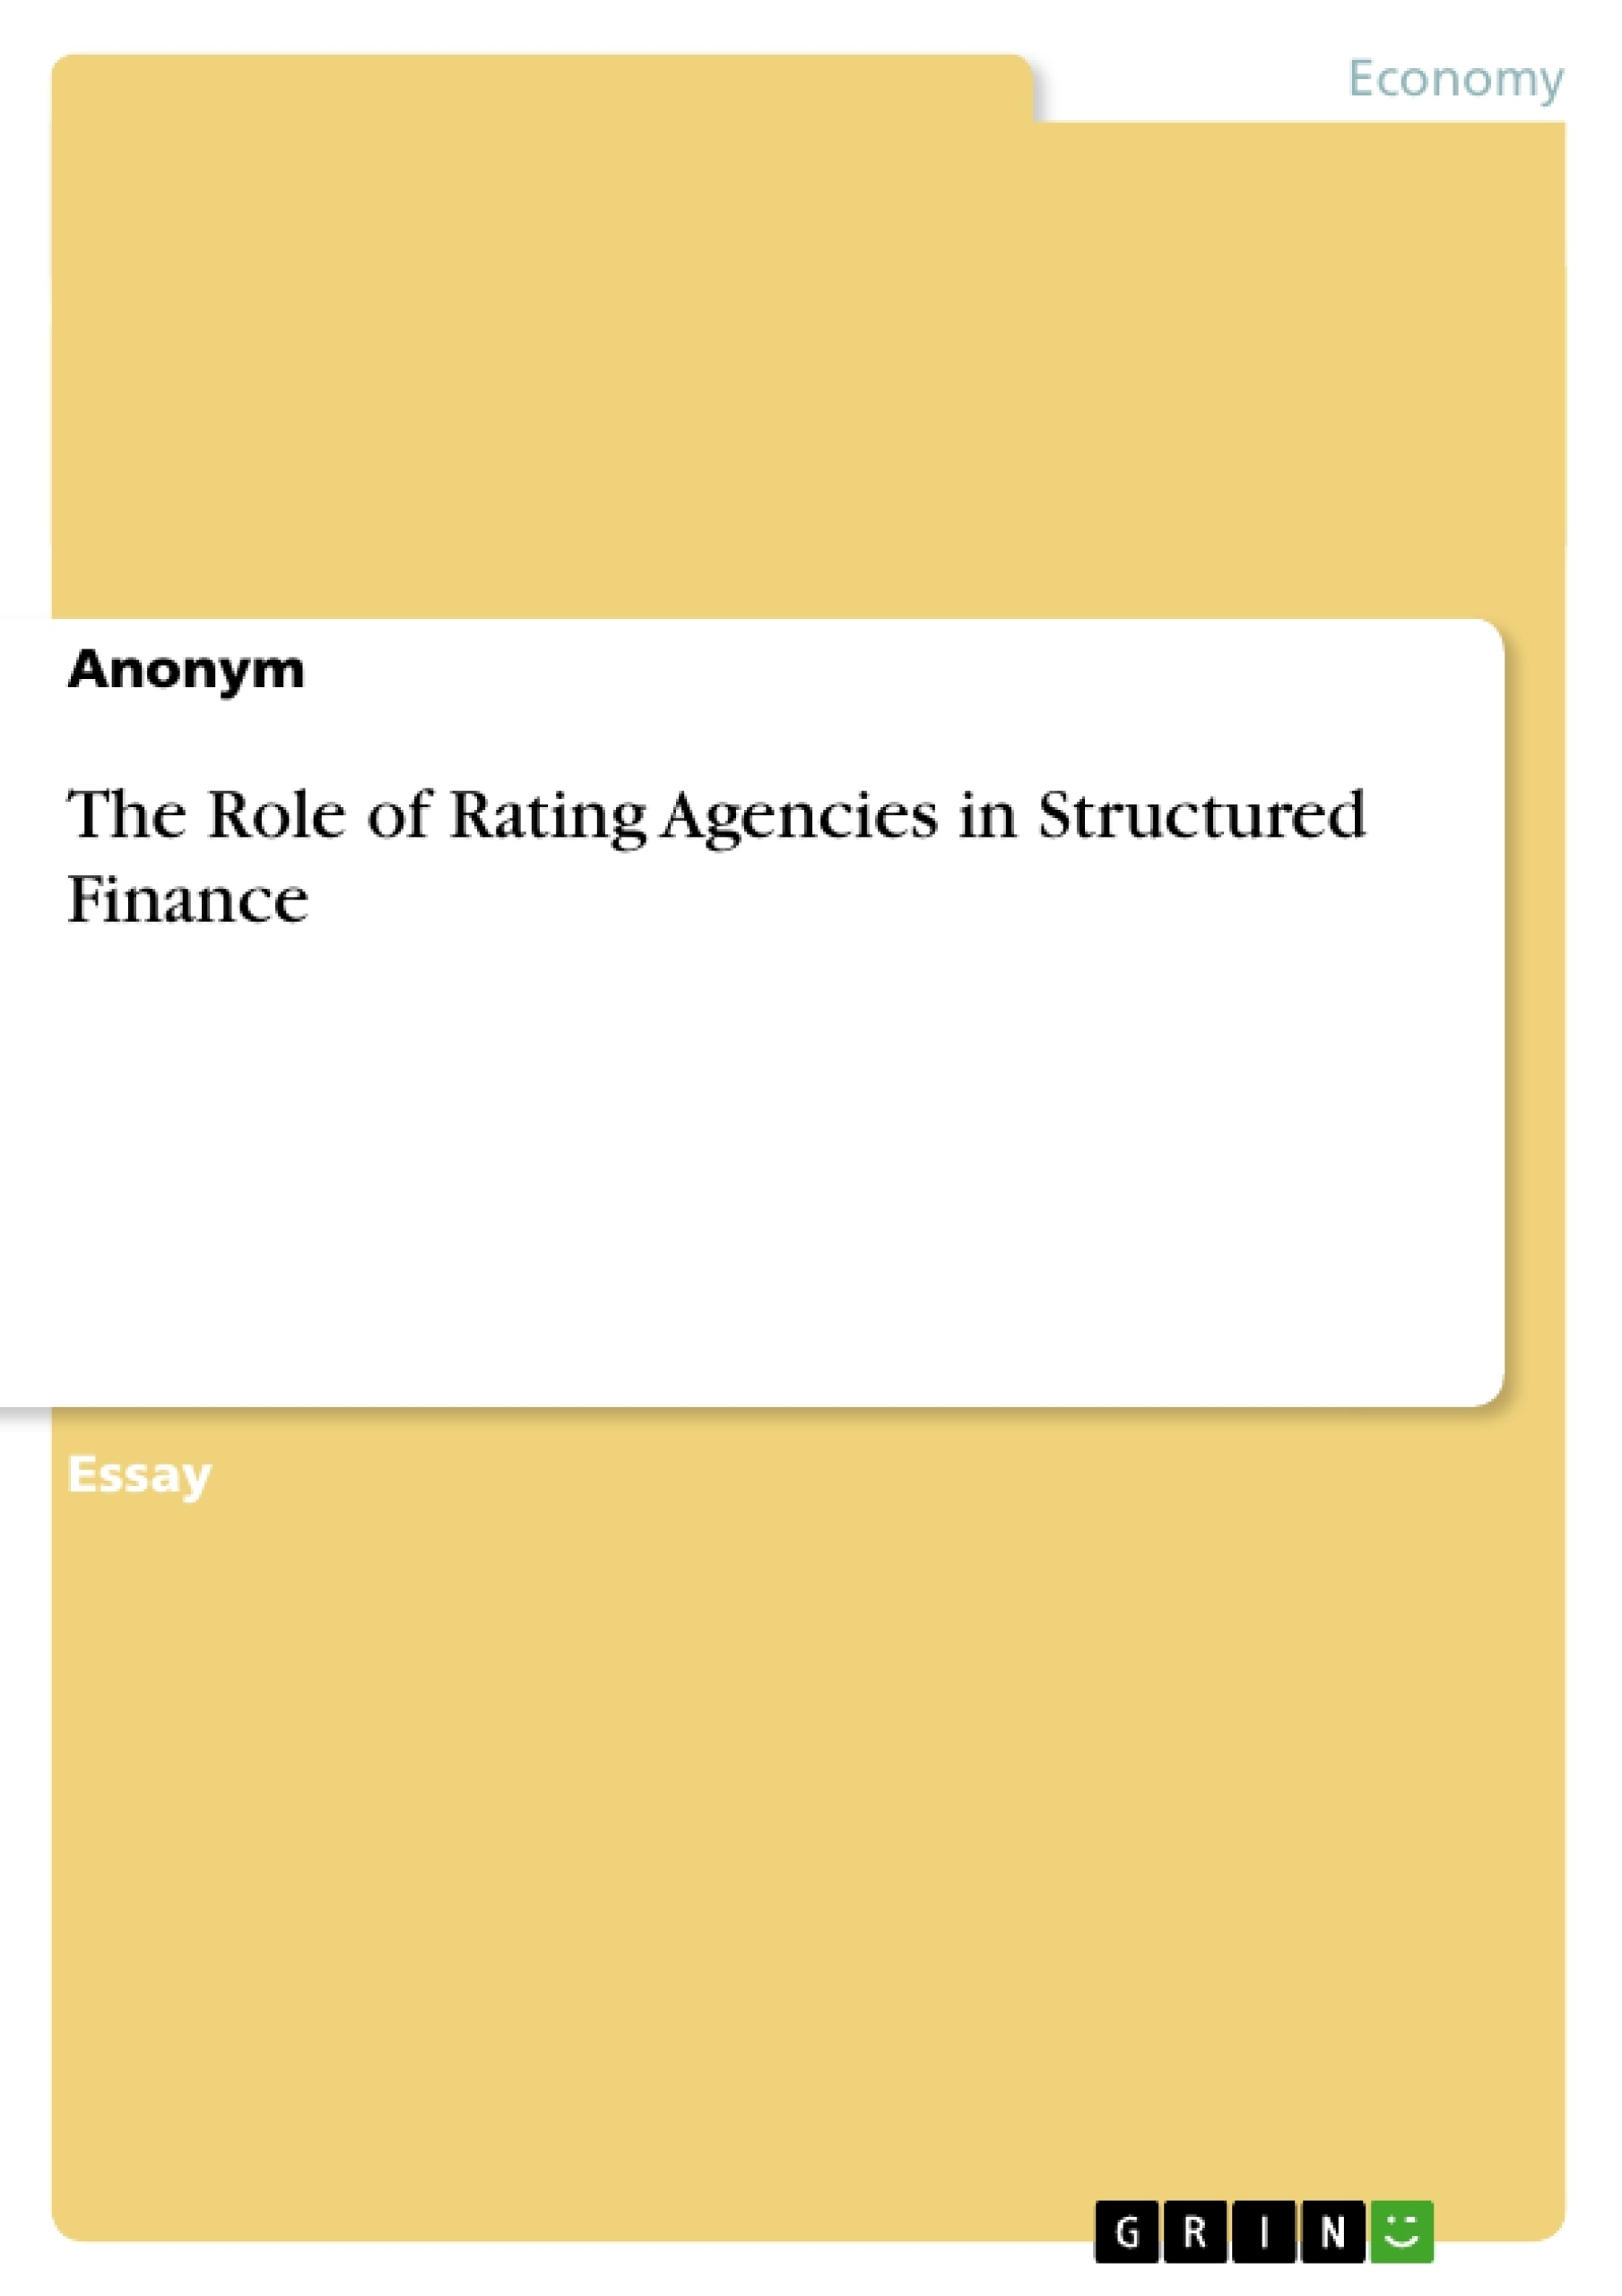 Title: The Role of Rating Agencies in Structured Finance